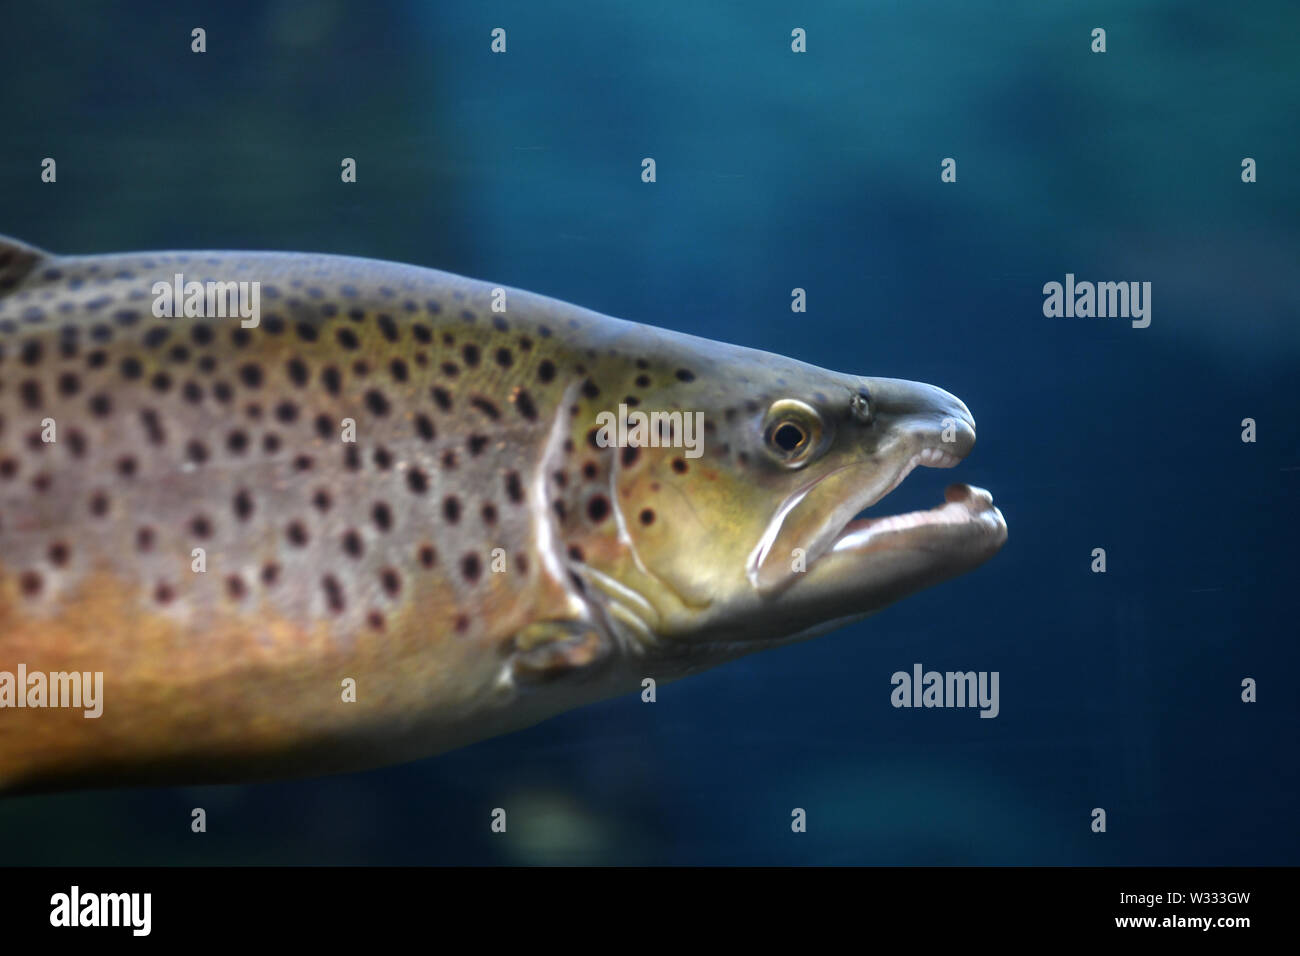 Underwater shot of brown trout (Salmo trutta), a European species that has been widely introduced into suitable environments around the world. - Stock Image